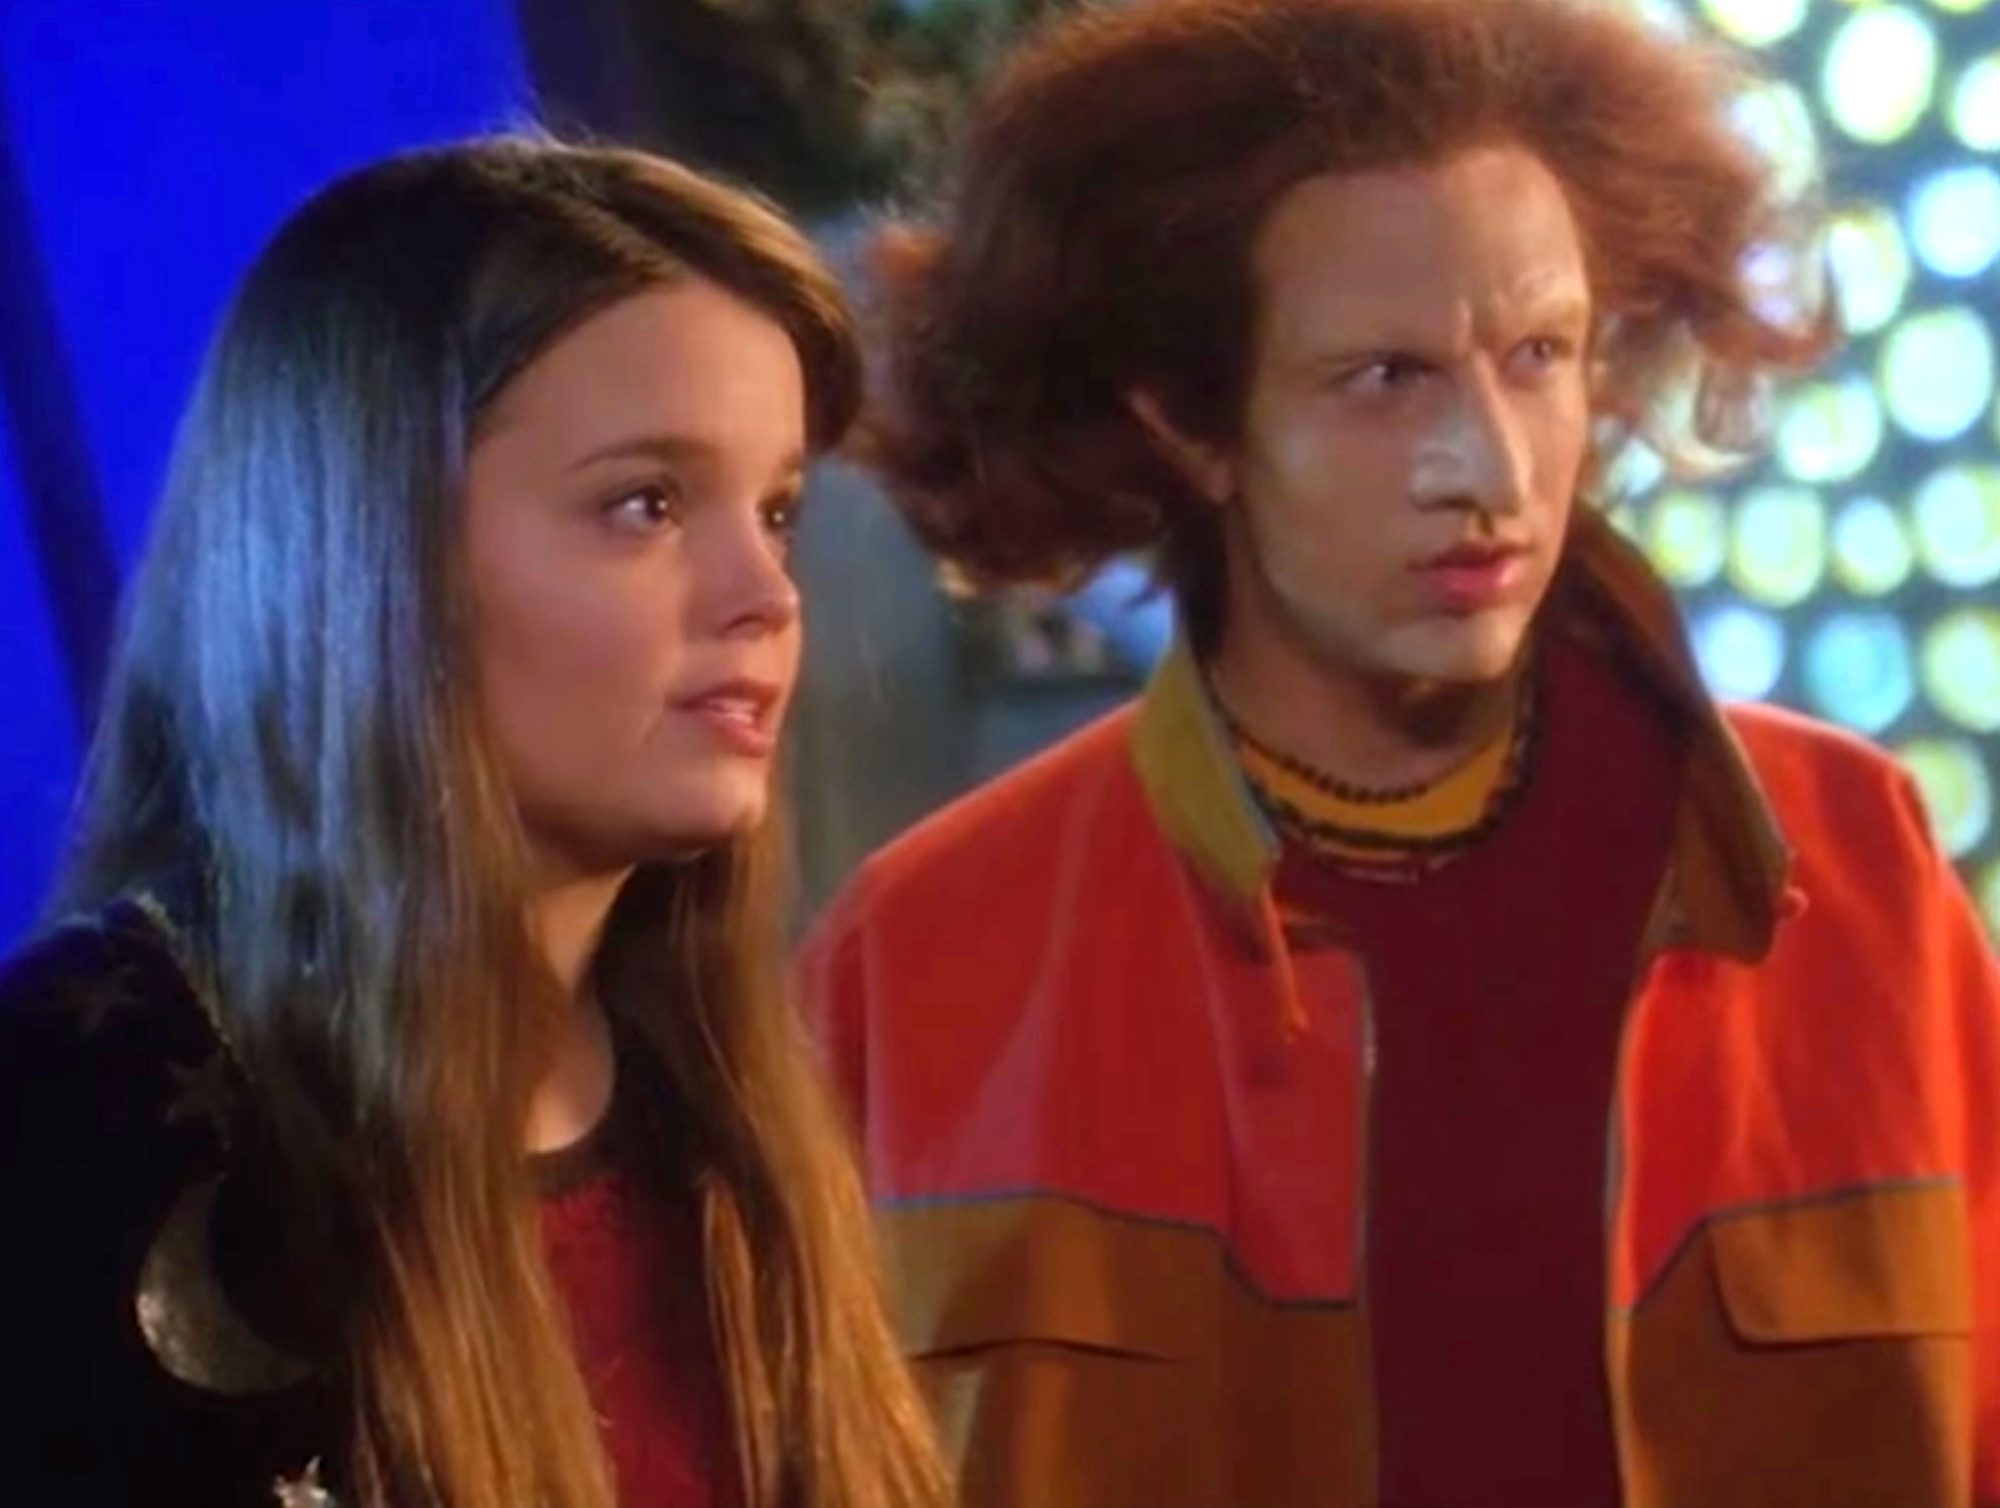 Halloweentown II: Kalabar's Revenge (screen grab)CR: Disney Channel